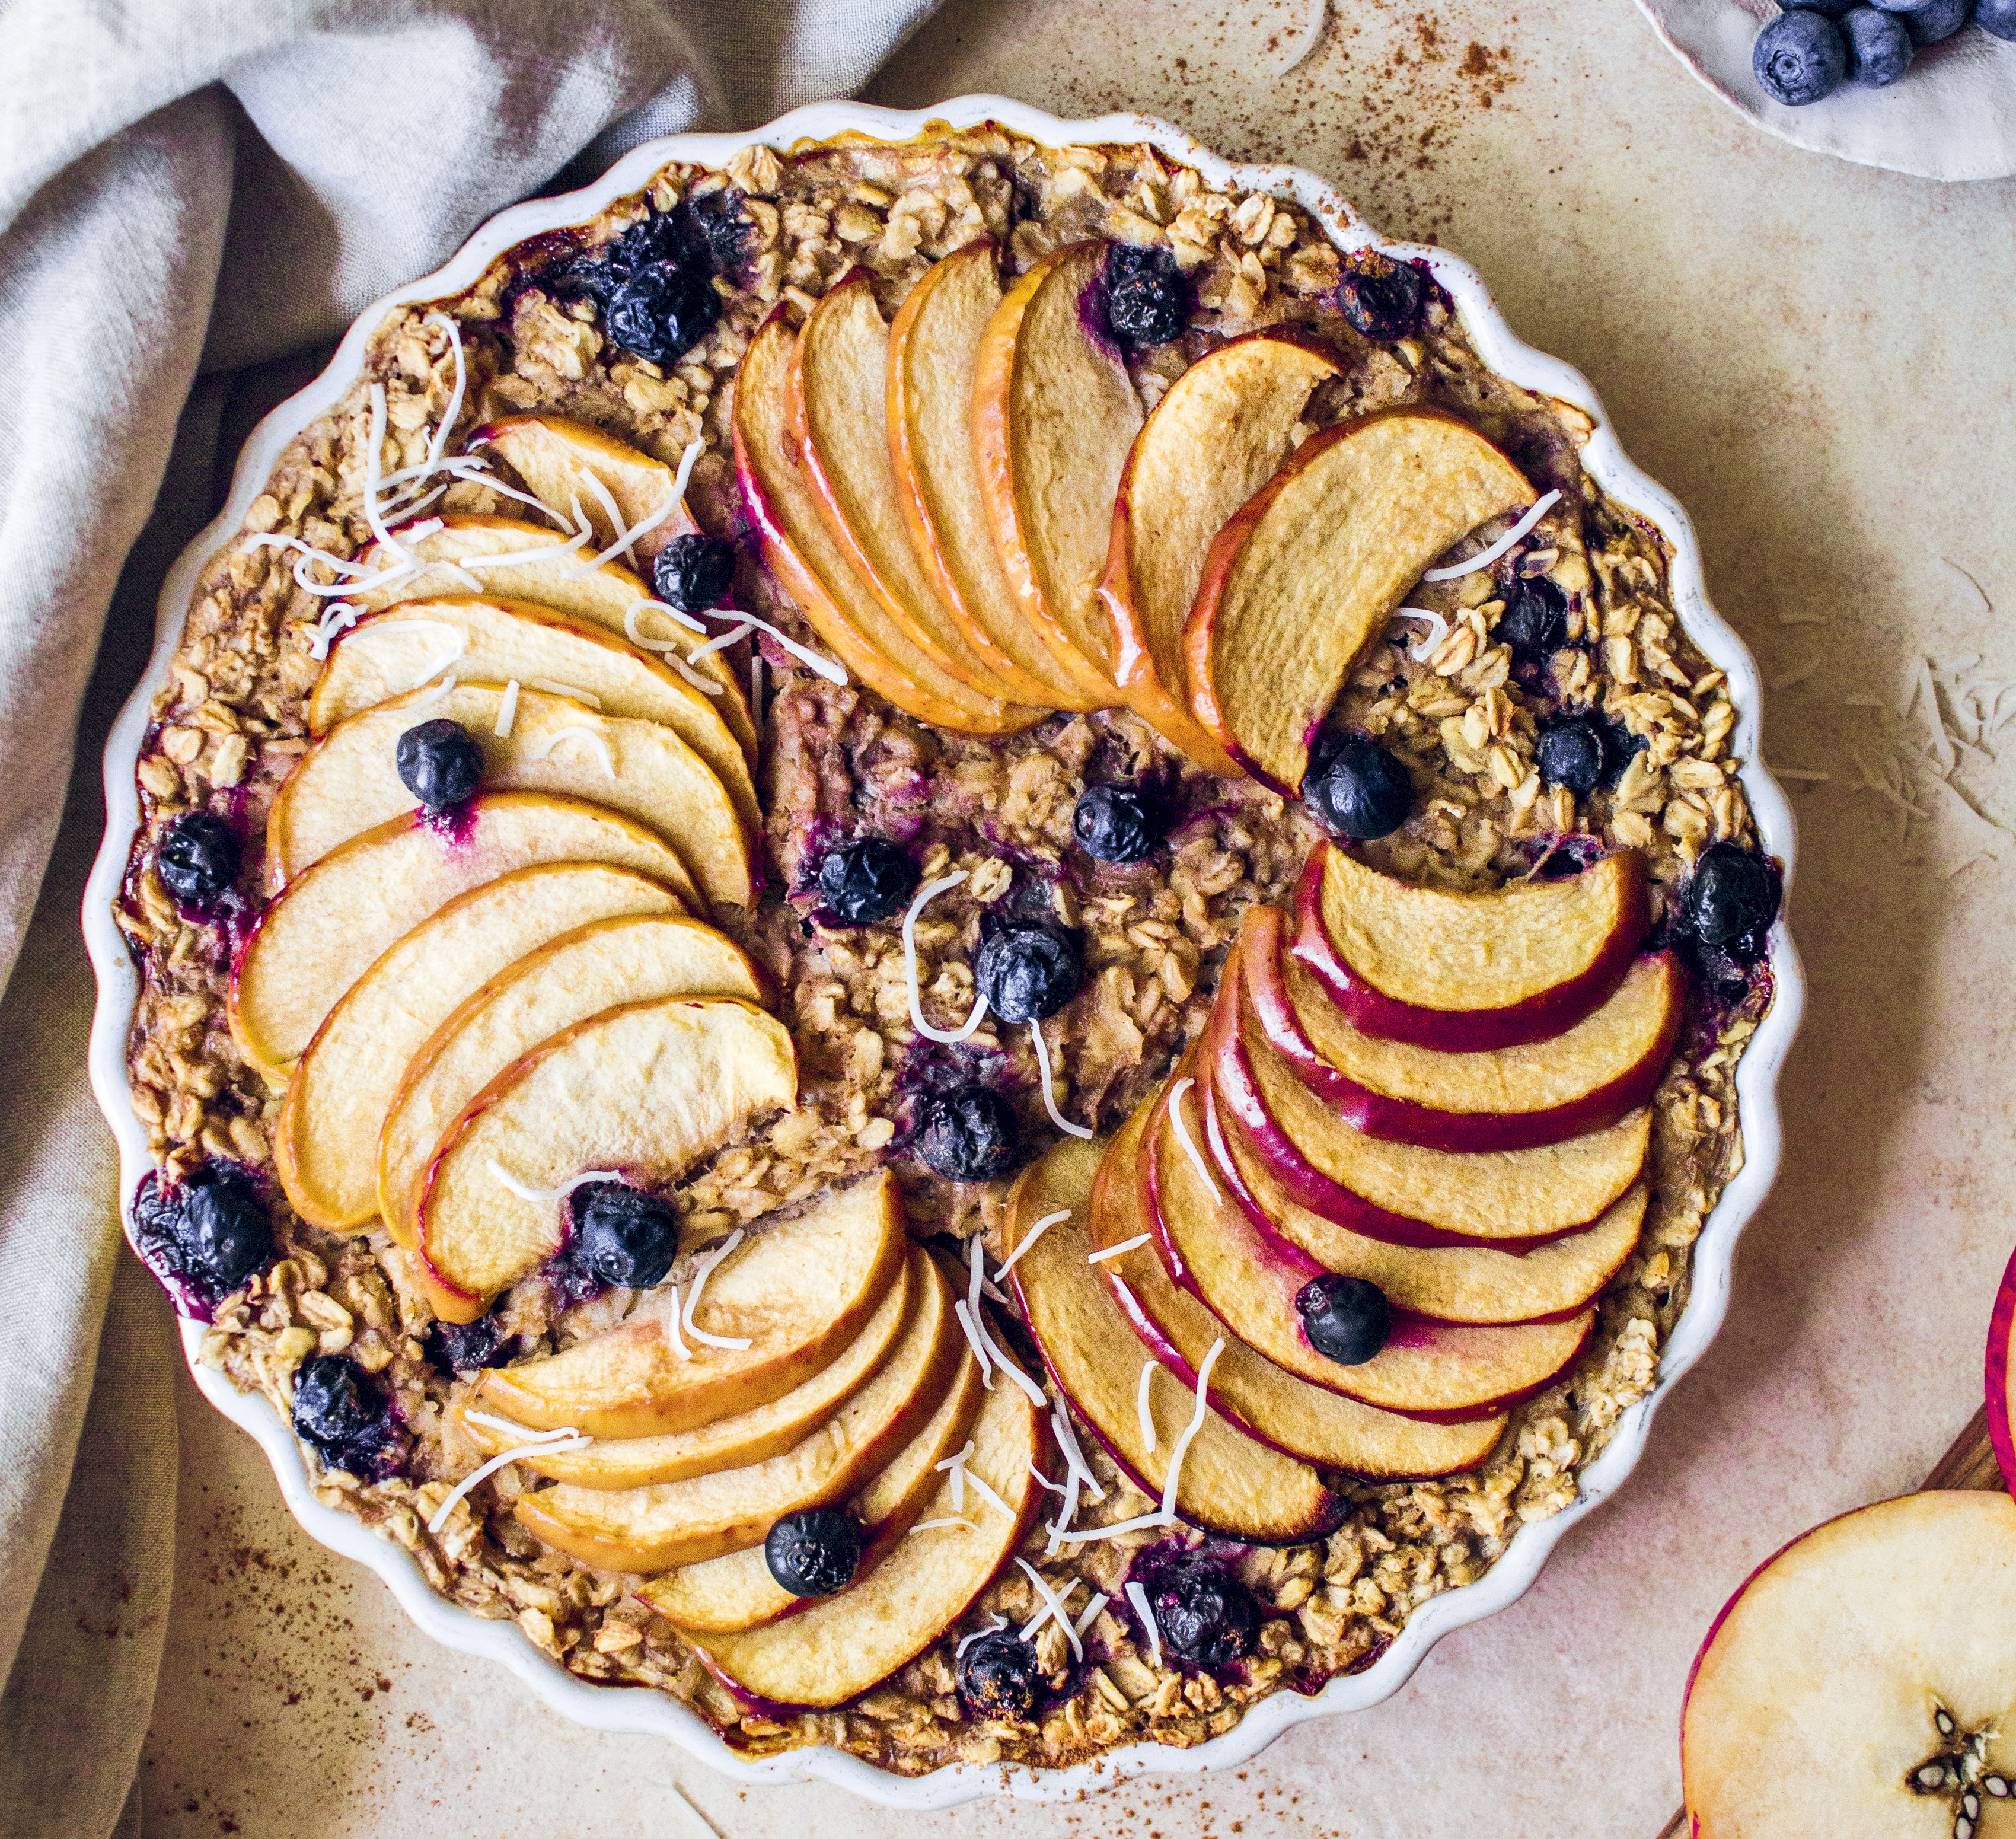 Vegan Apple and Blueberry Pie Baked Oats